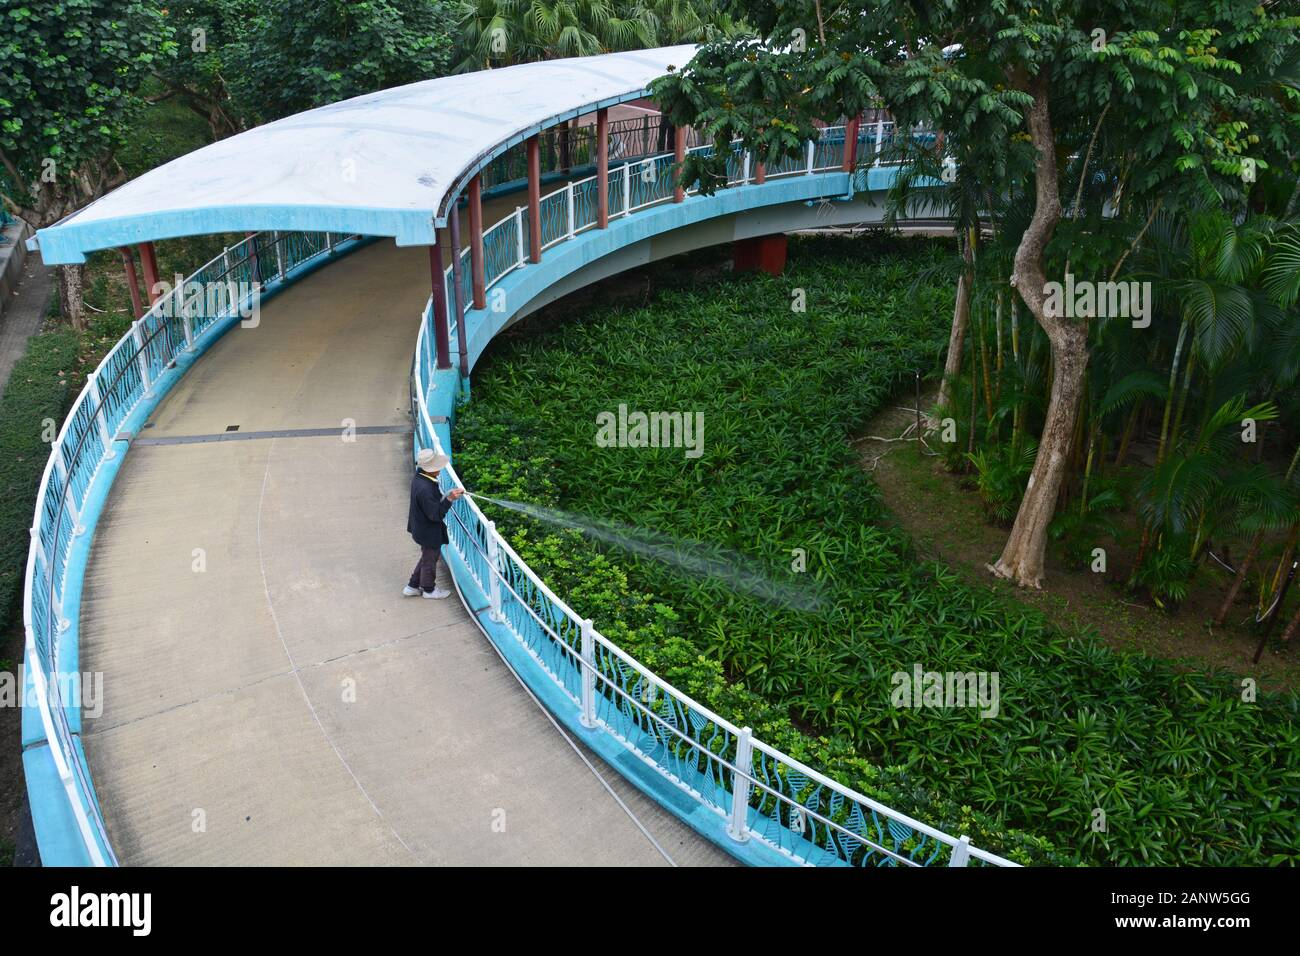 A women waters the plants in a garden at the pedestrian overpass in Quarry Bay Park in Hong Kong. Stock Photo